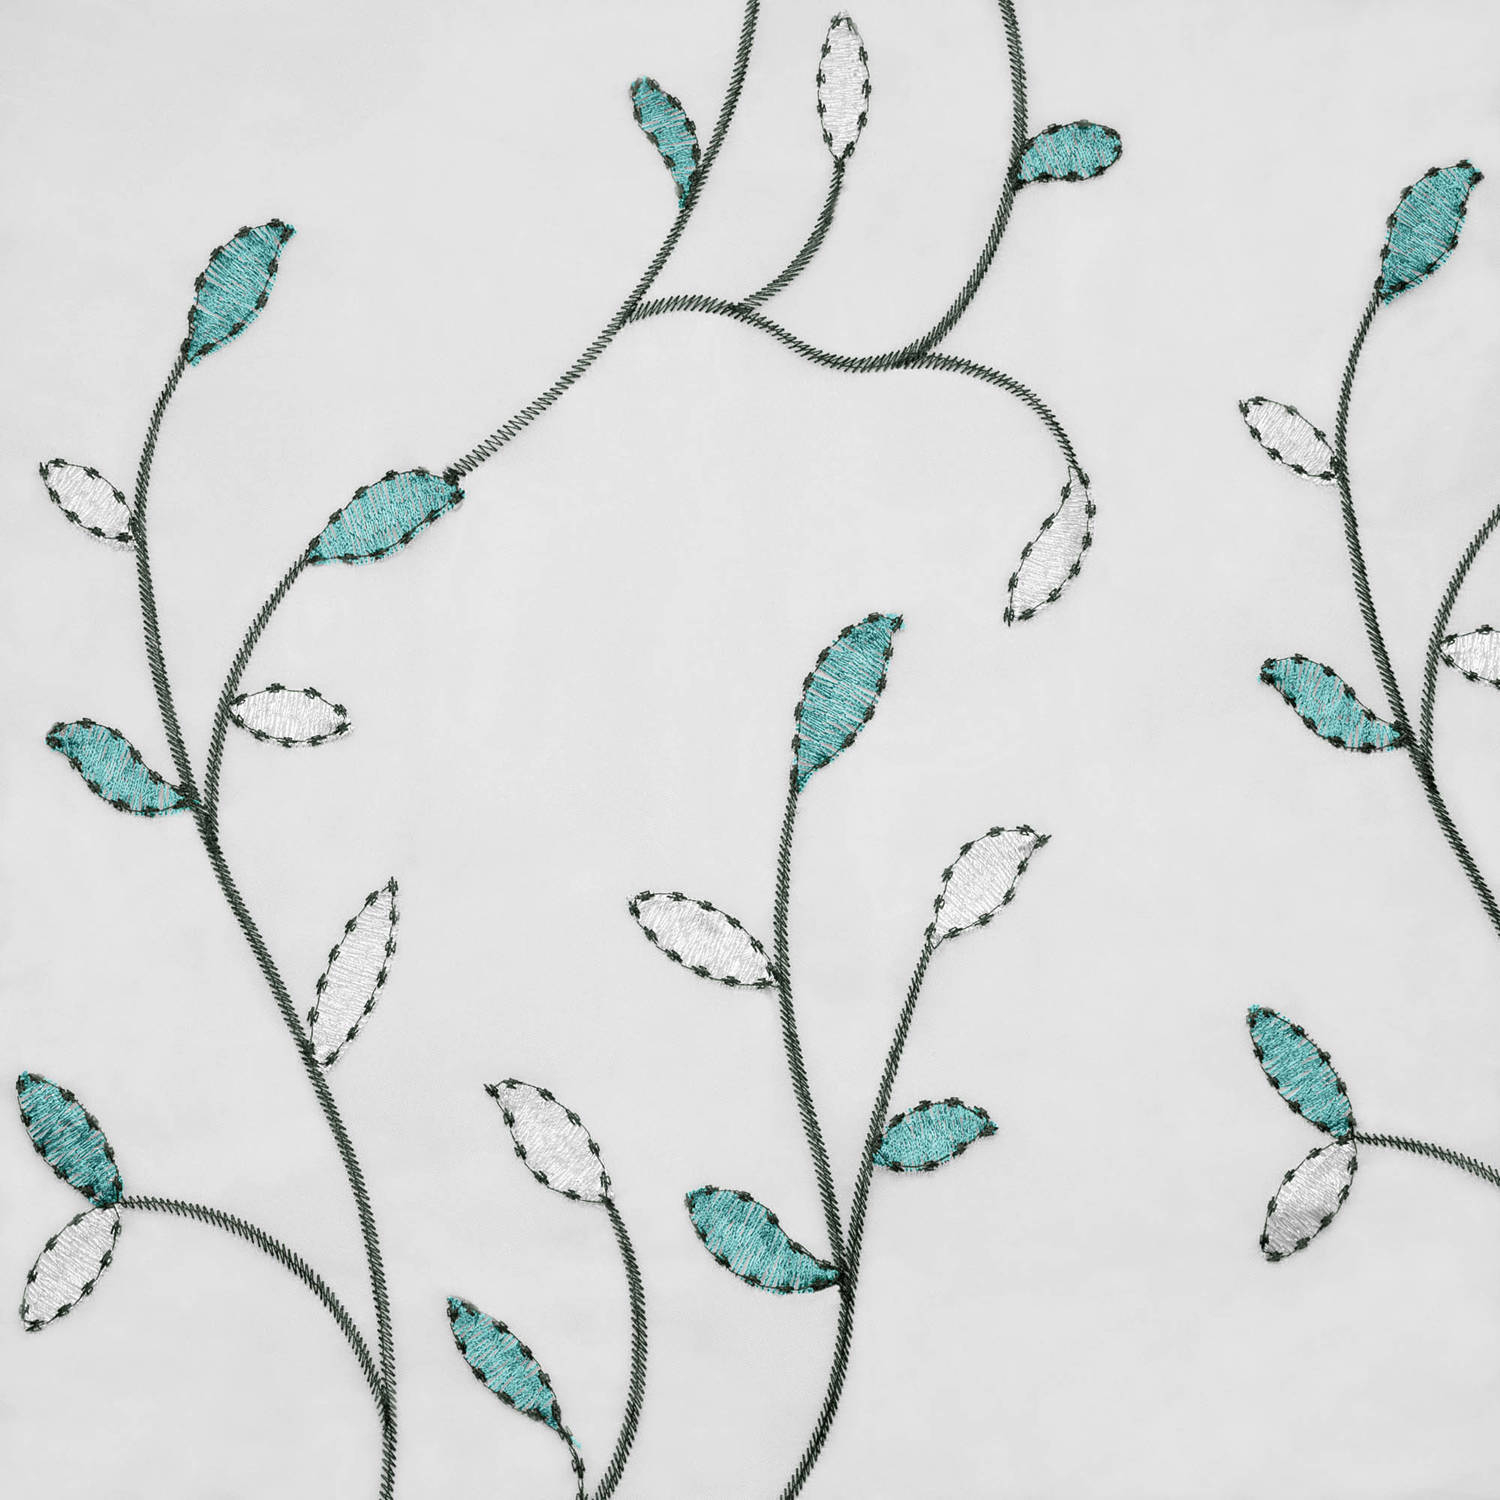 "Wavy Leaves Embroidered Sheer Extra Wide 54"" X 84"" Grommet Curtain Panel With Regard To Wavy Leaves Embroidered Sheer Extra Wide Grommet Curtain Panels (View 8 of 30)"